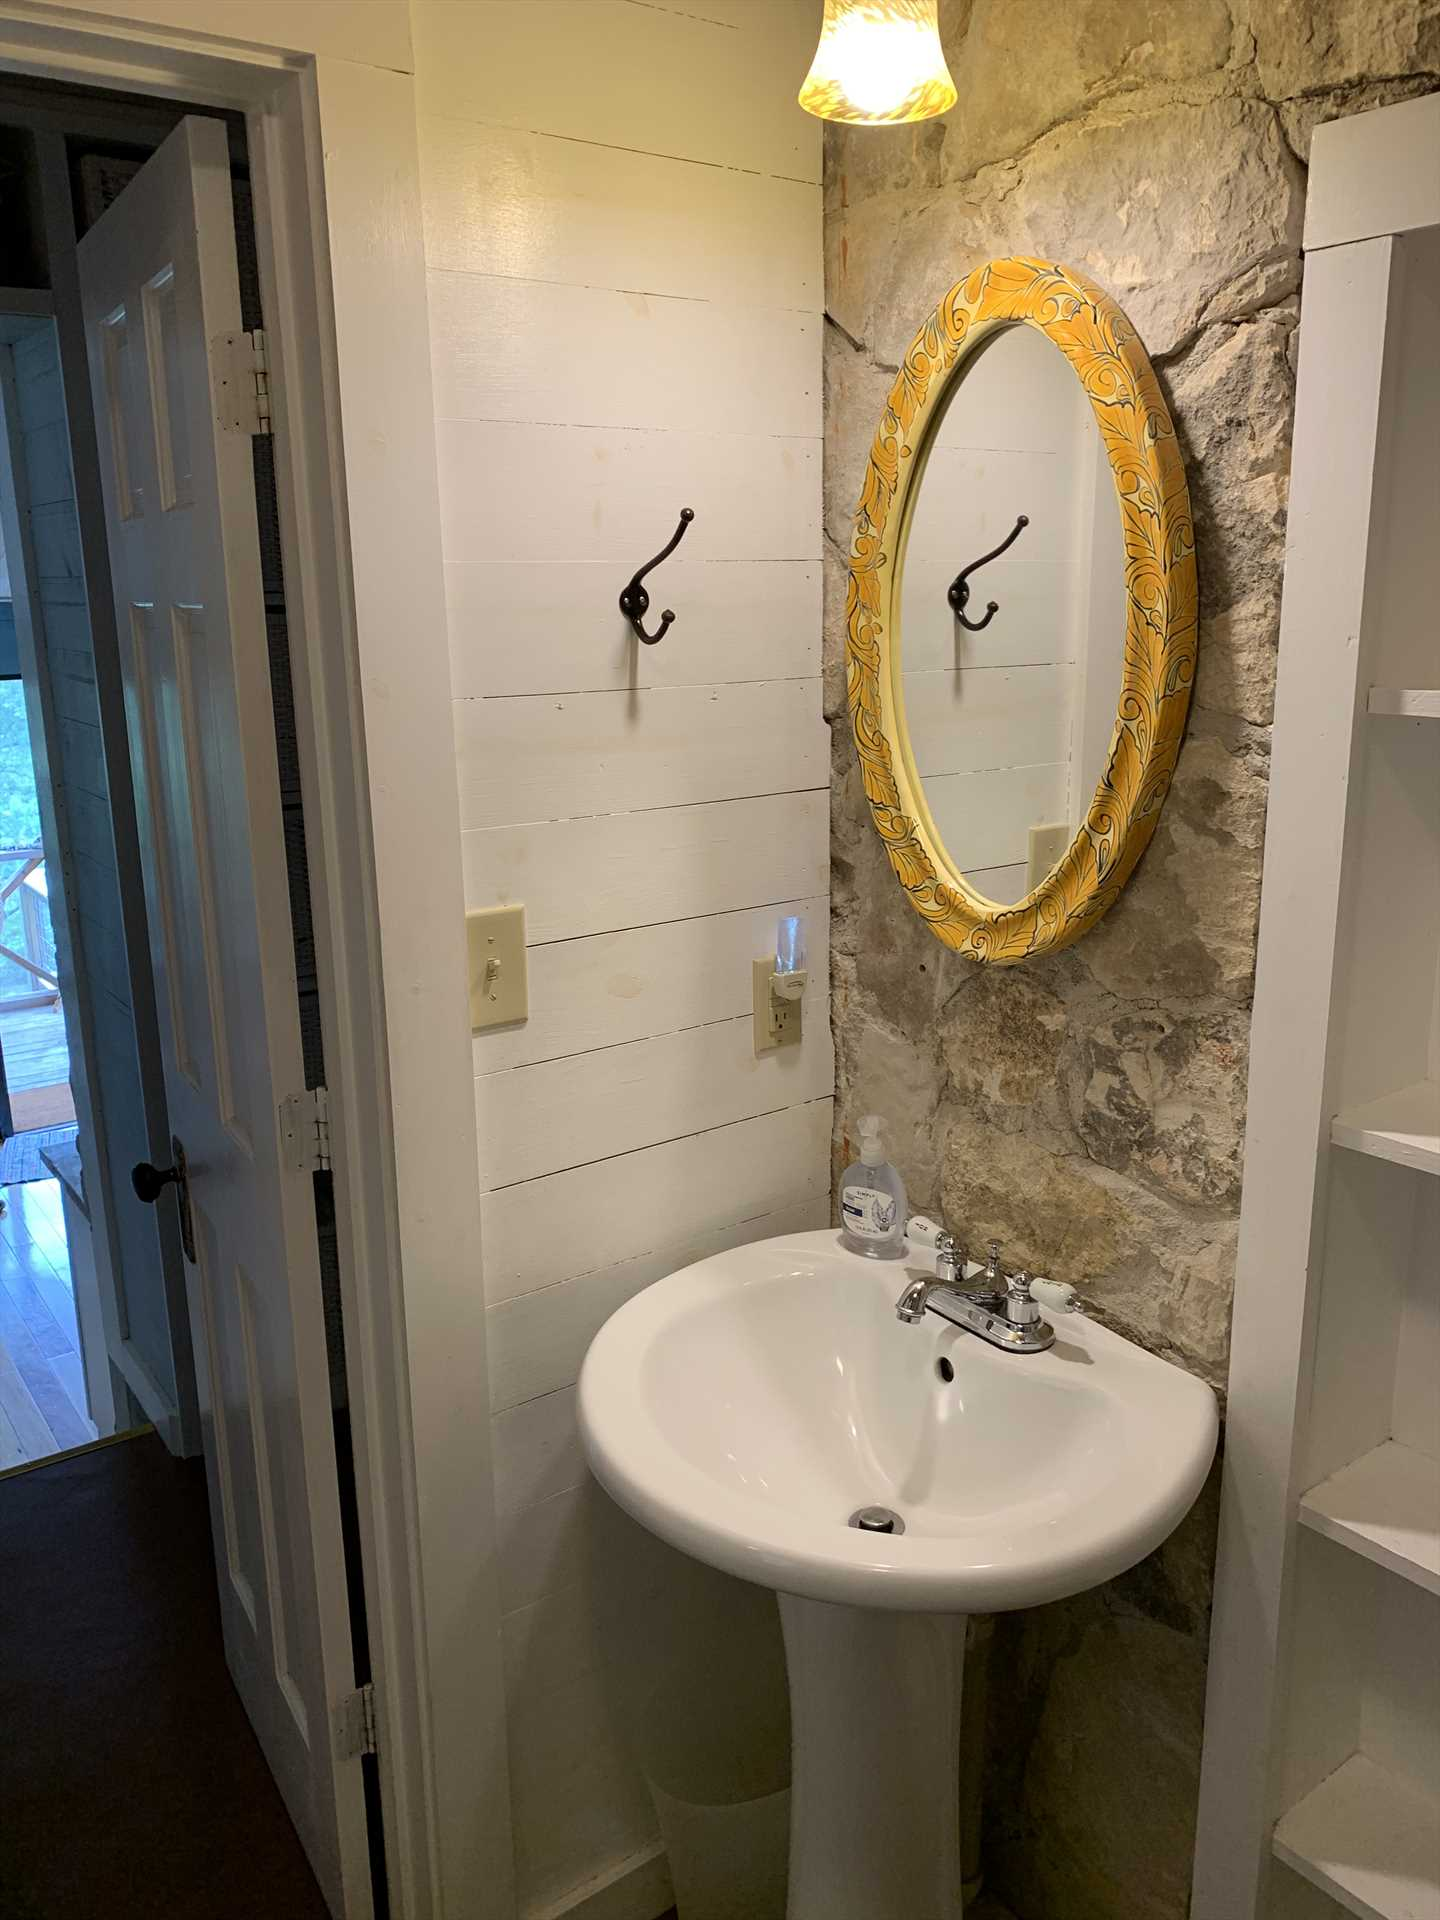 The stone wall and pedestal-style vanity are just two examples of the unique touches throughout the retreat.